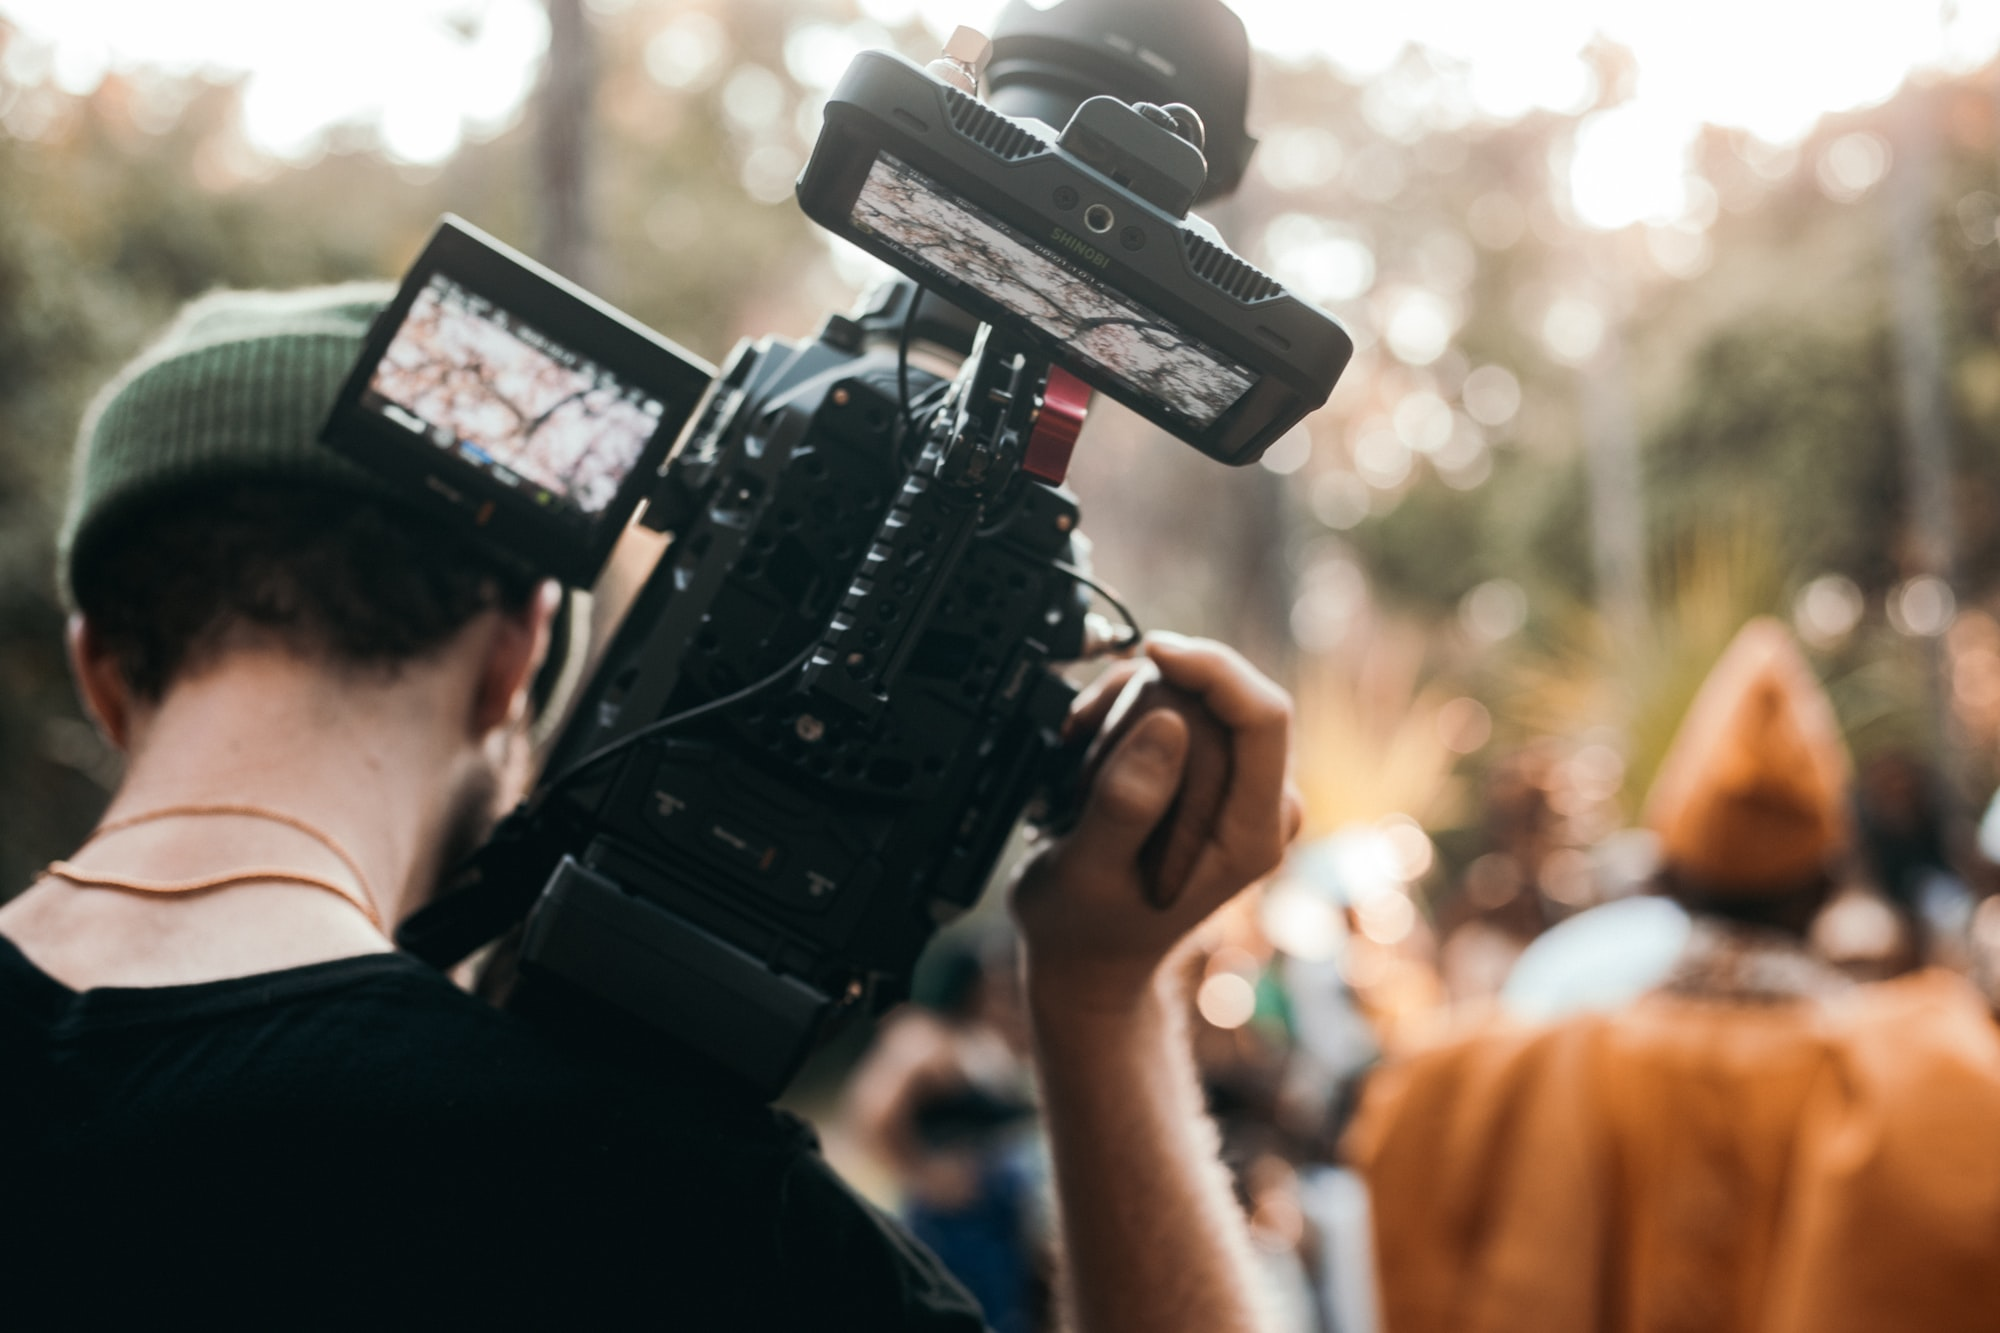 Important and unusual tips for every beginner filmmaker